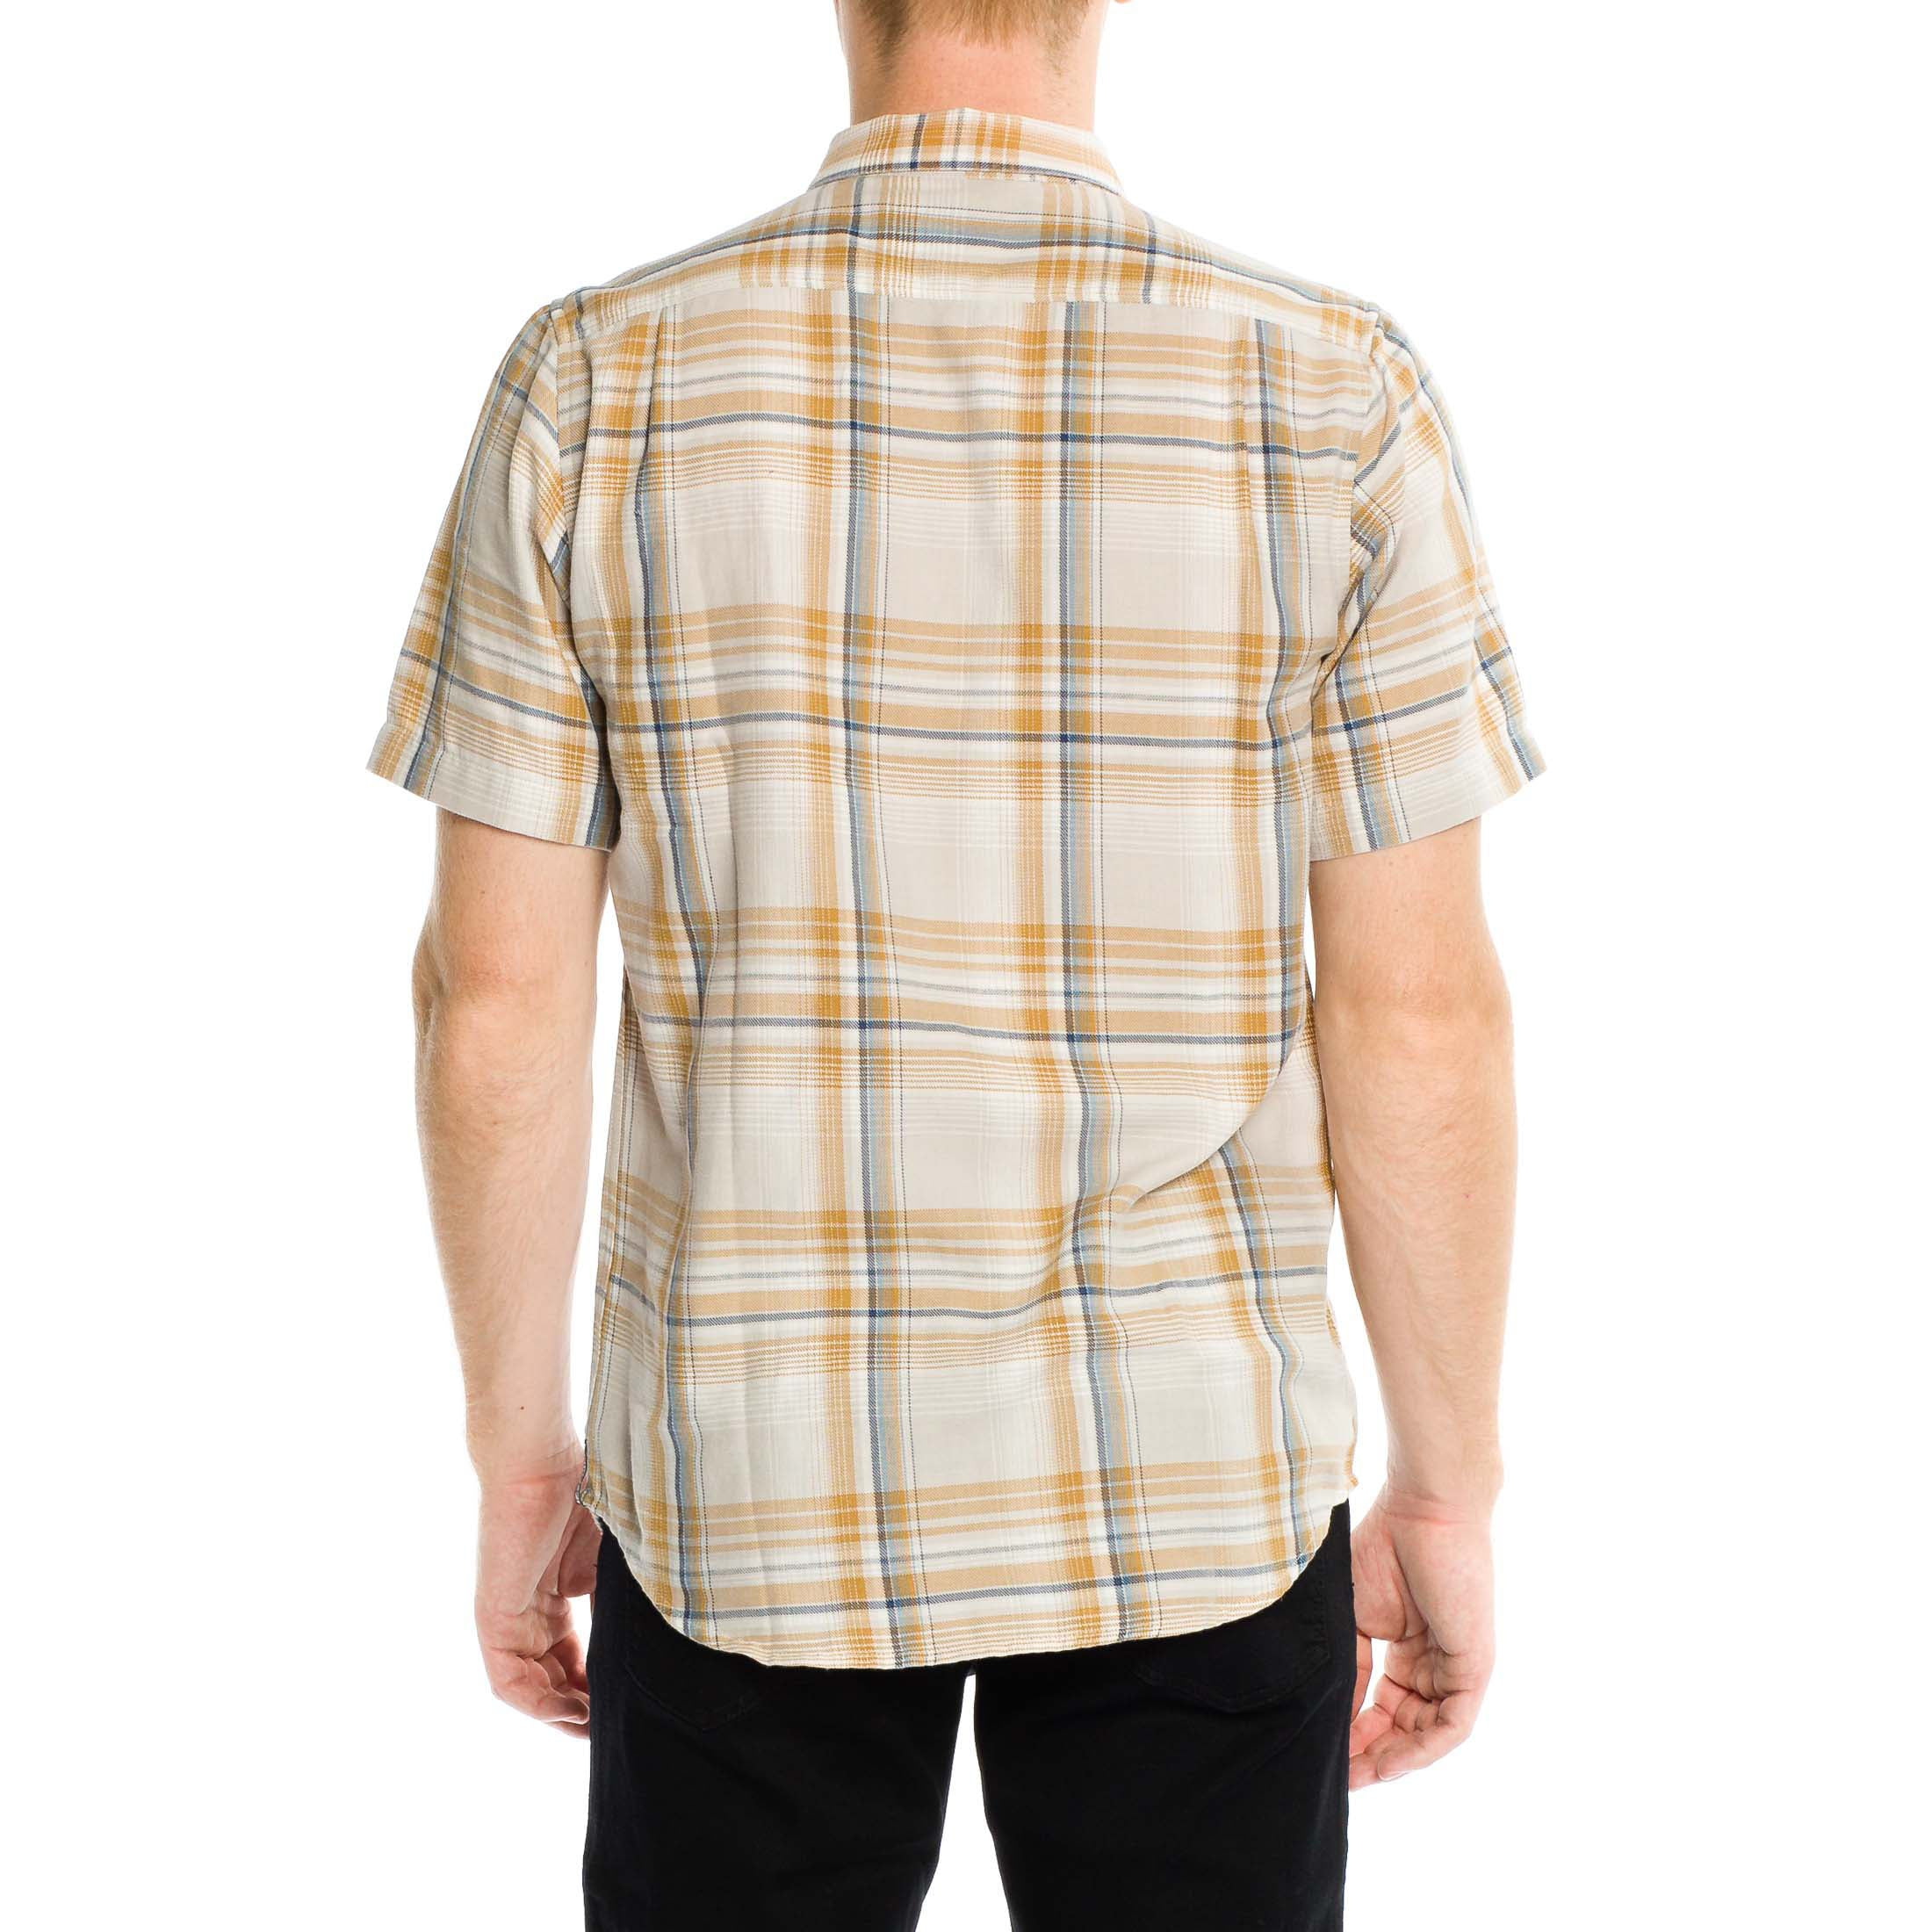 Miles Short Sleeve Shirt - Linen - Ezekiel Clothing